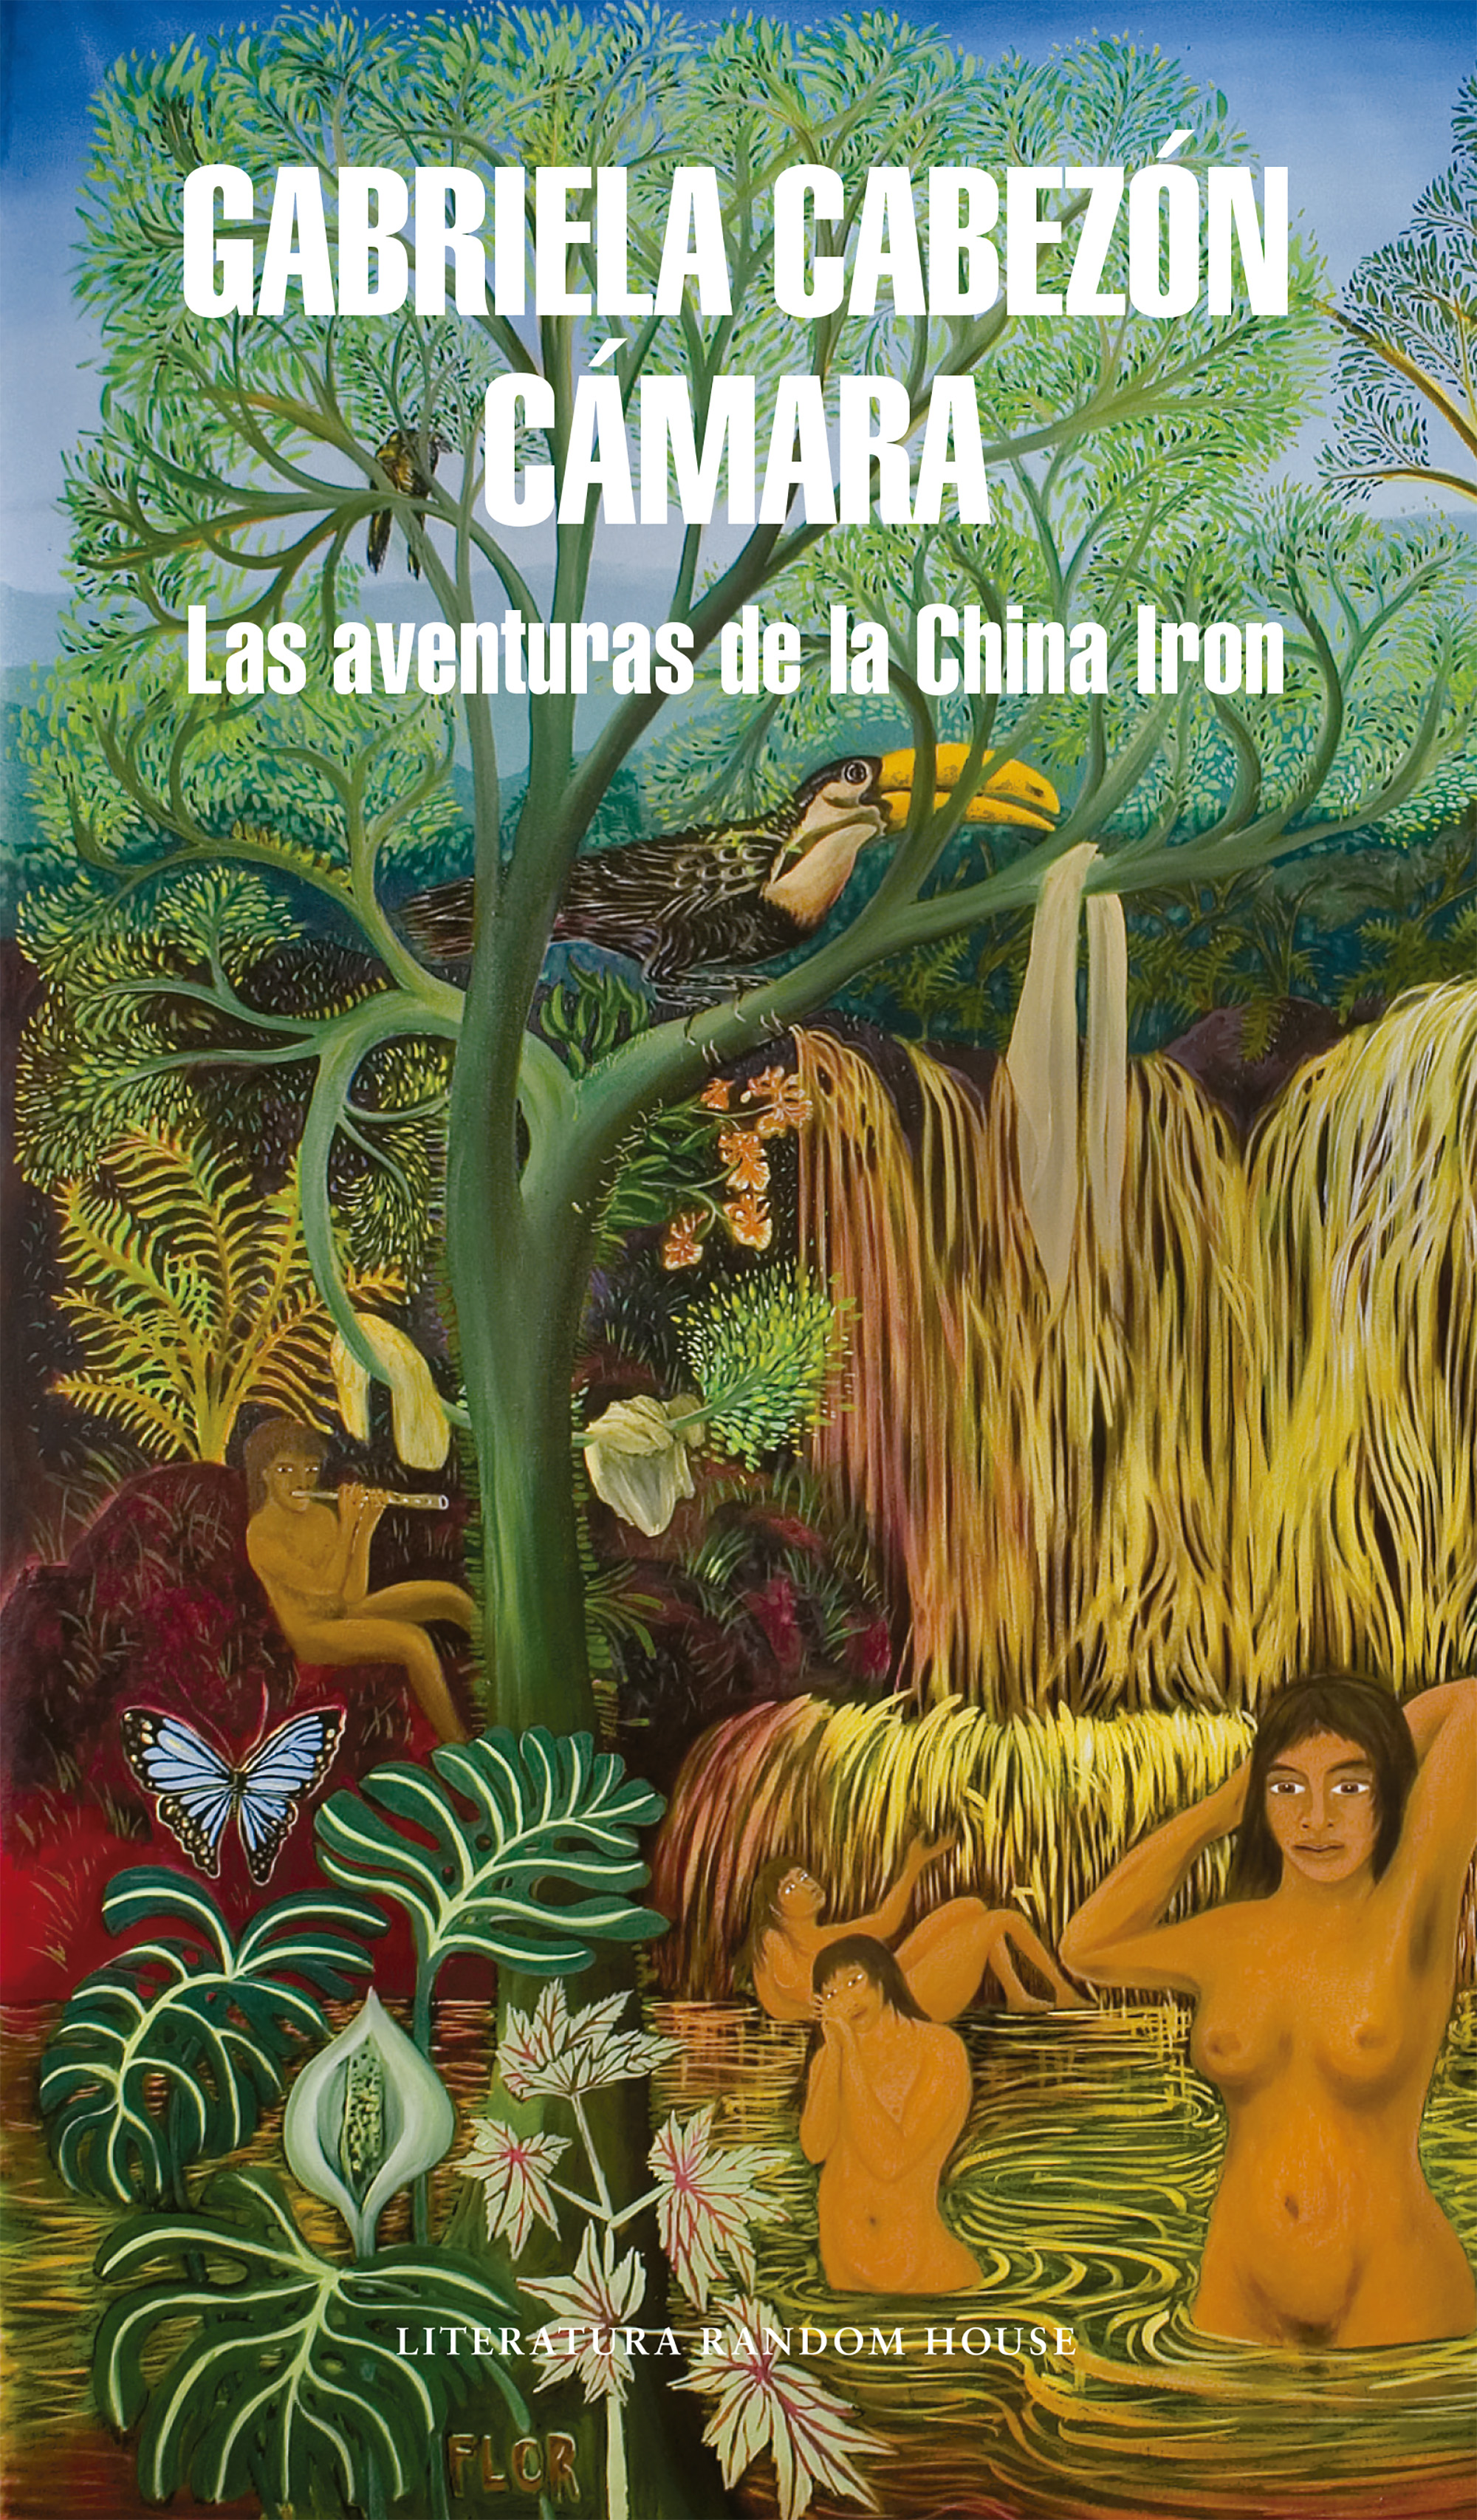 The Adventures of China Iron  (Las aventuras de la China Iron)